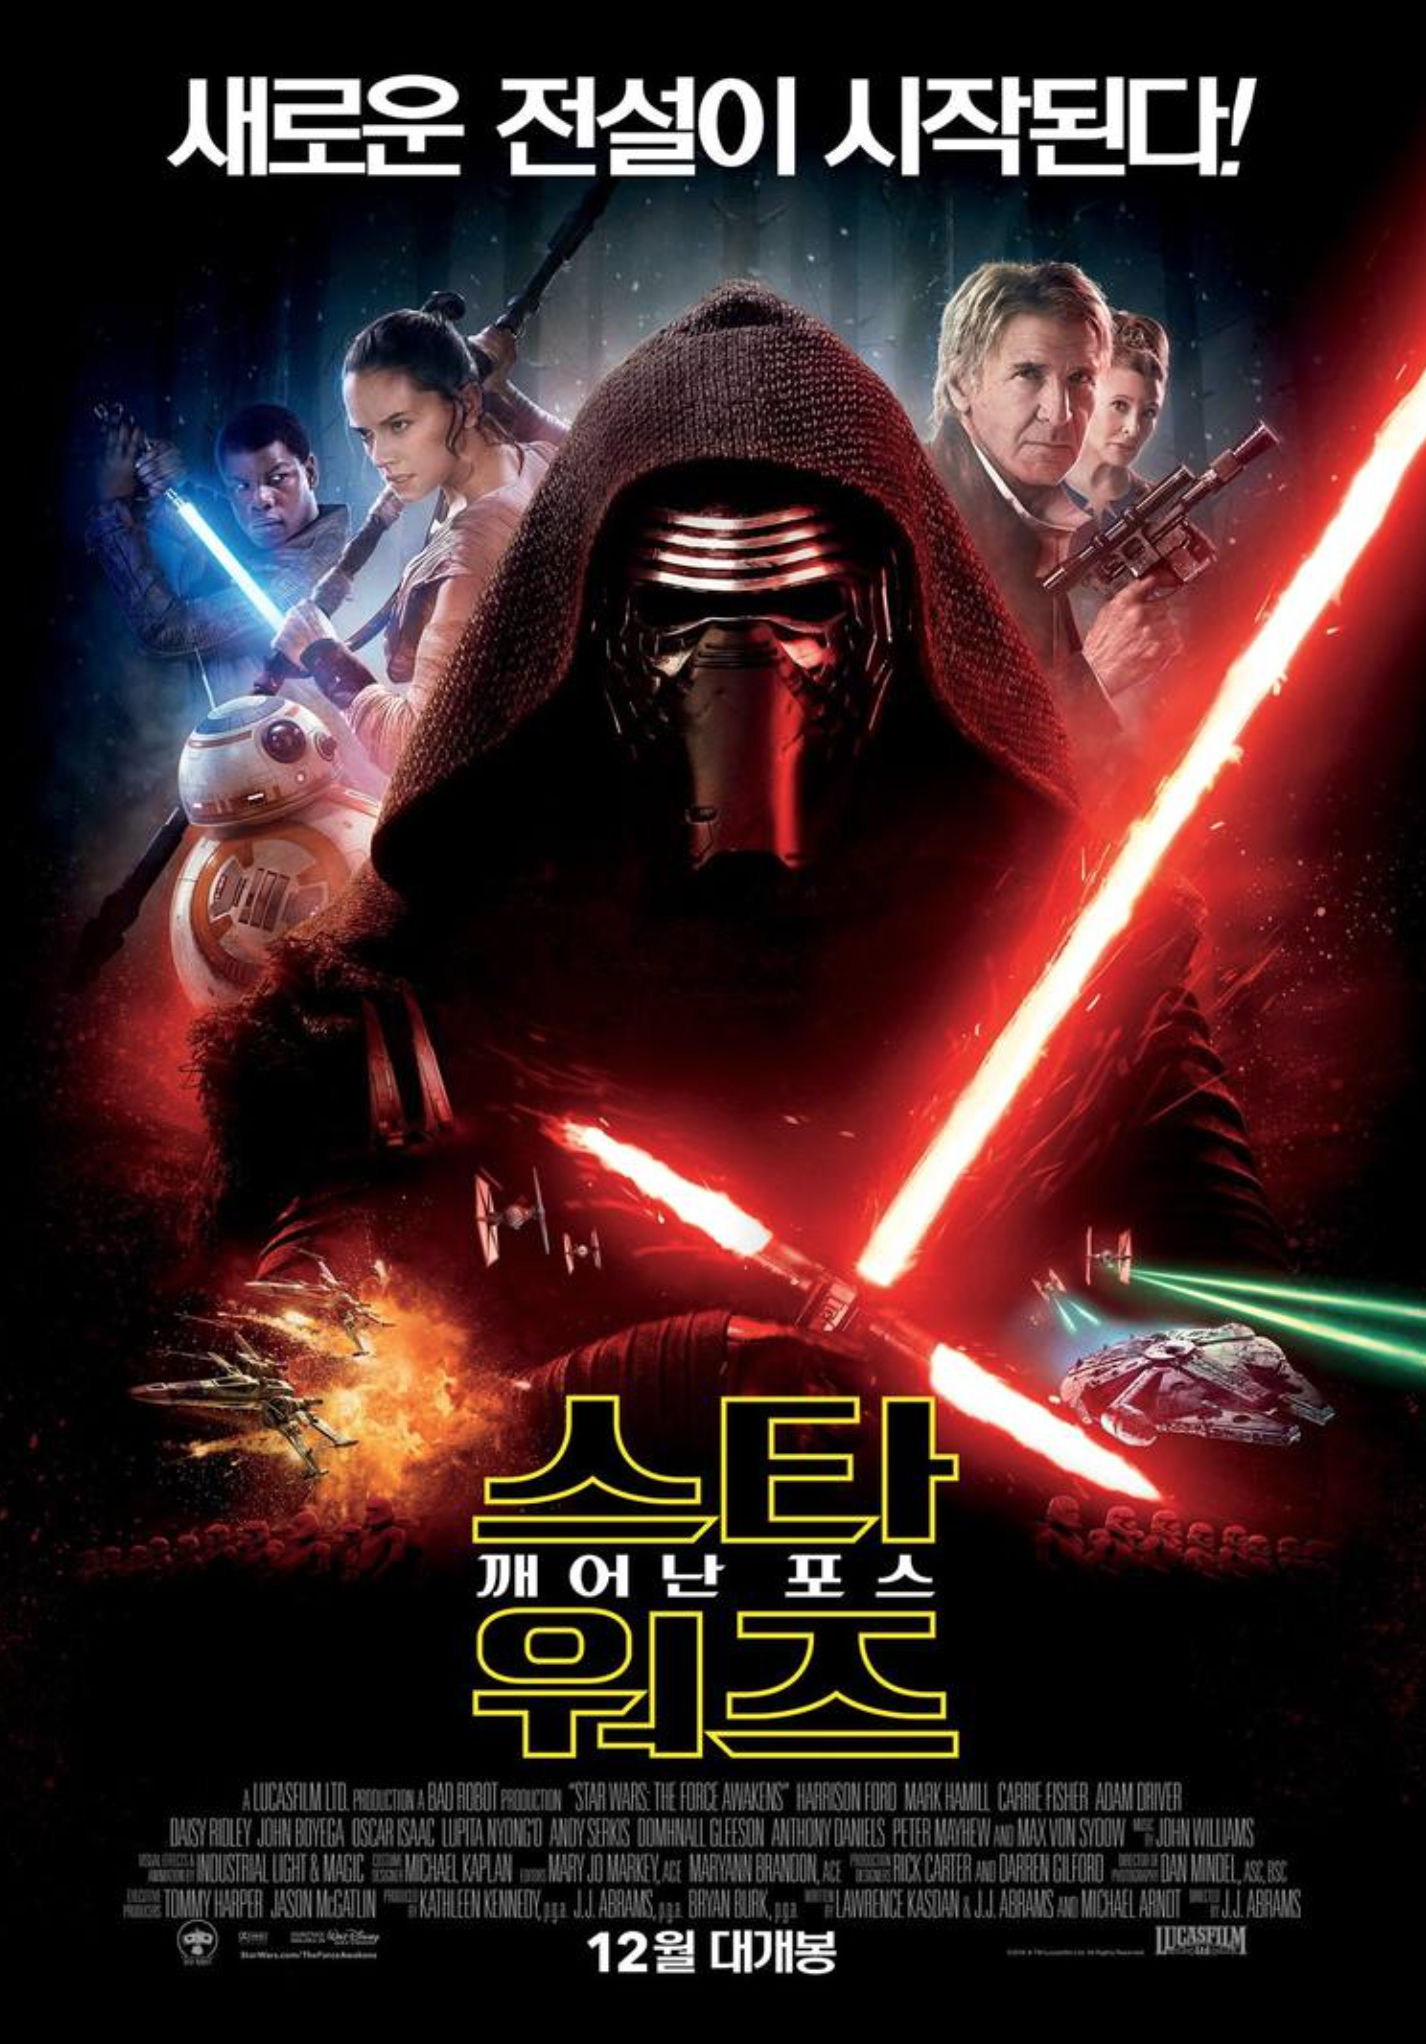 ' ' from the web at 'http://screenrant.com/wp-content/uploads/star-wars-7-force-awakens-poster-international.jpg'